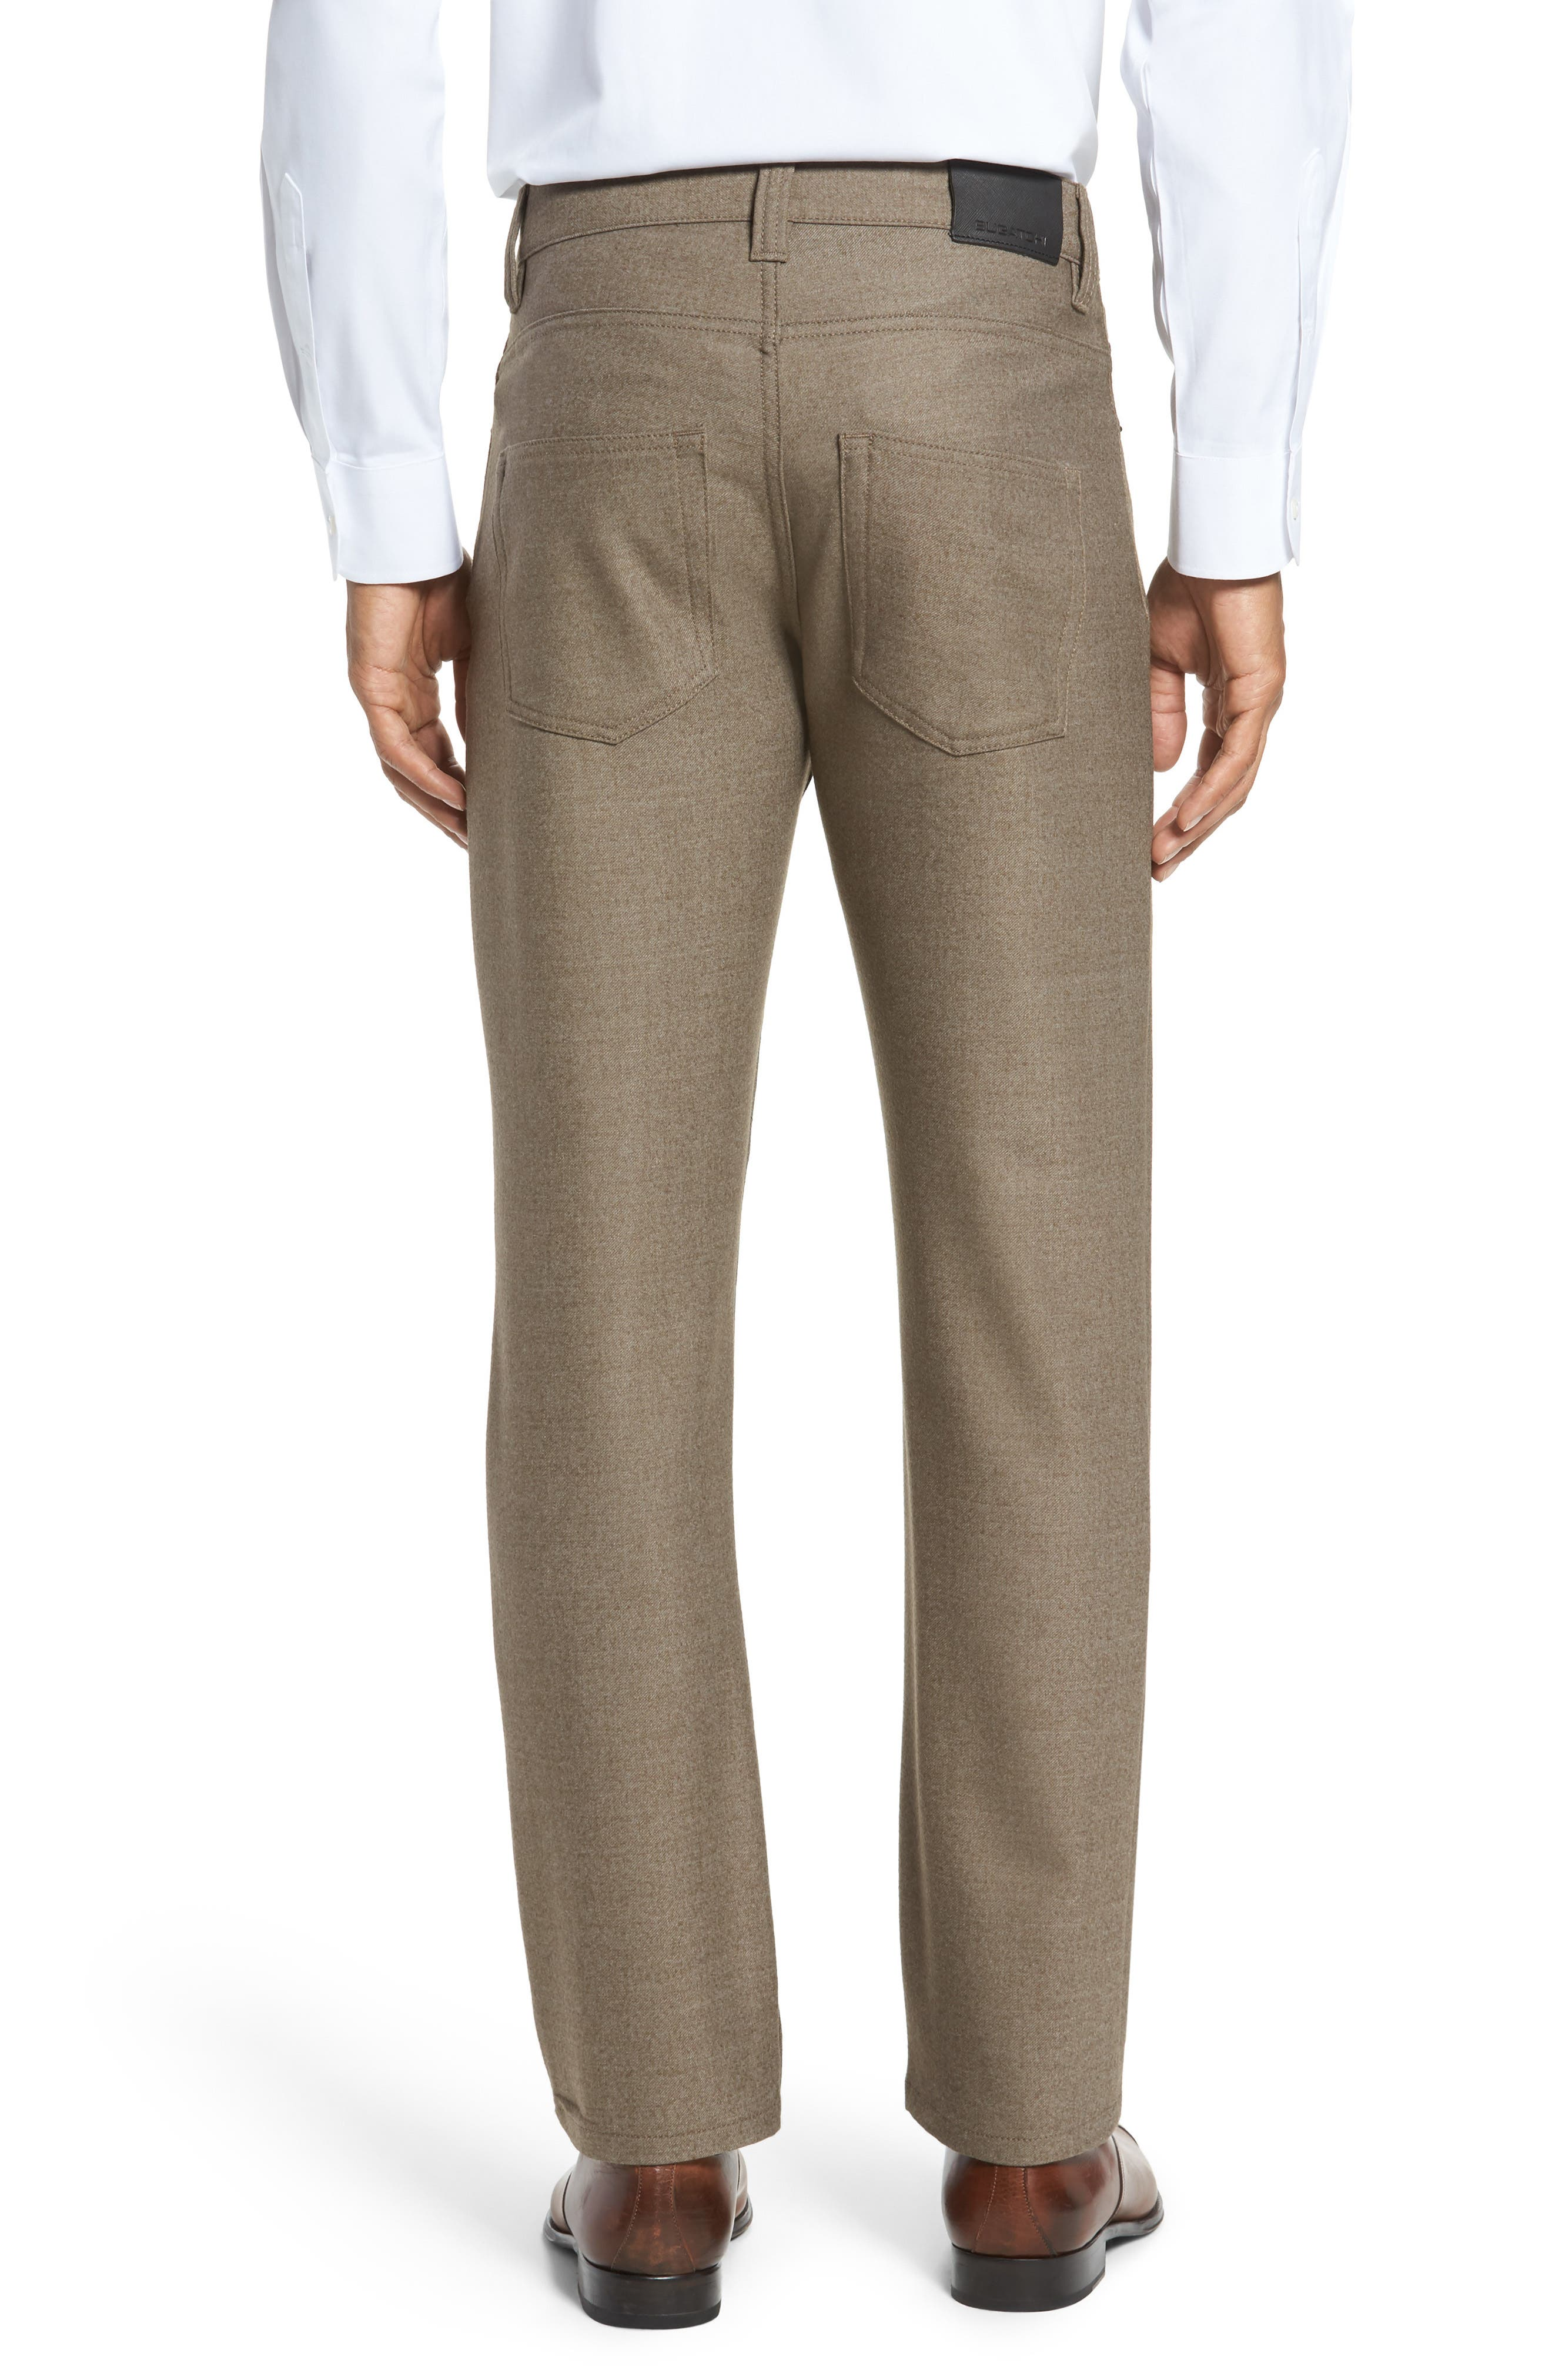 Wool Blend Pants,                             Alternate thumbnail 2, color,                             208